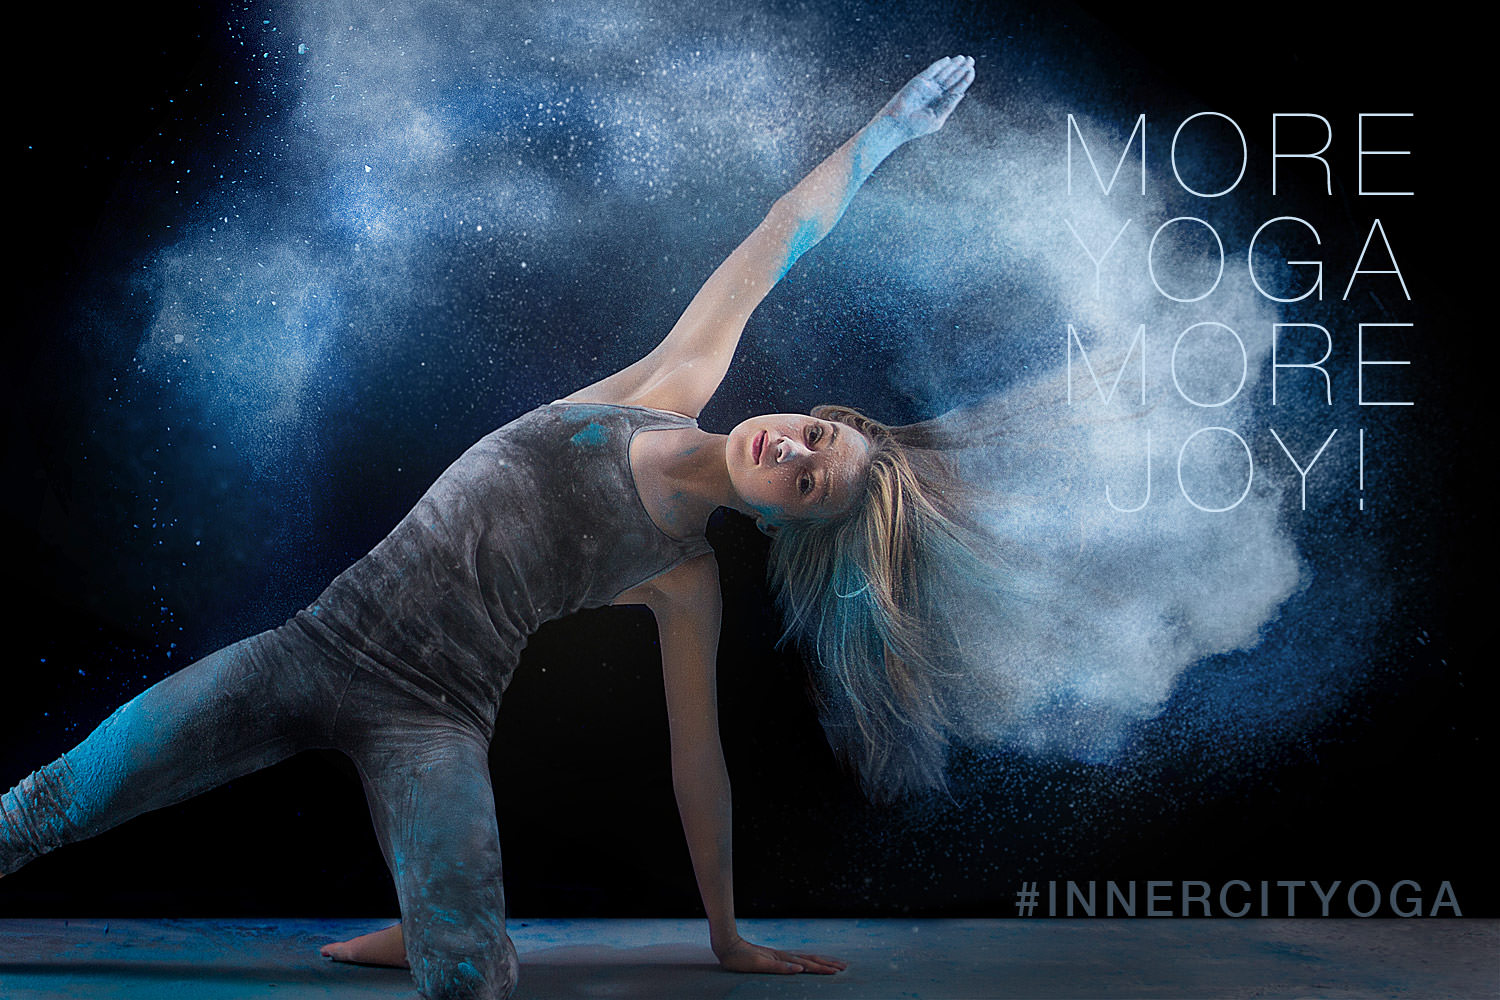 Members at INNERCITYOGA in Geneve / Geneva practice more with cheaper class cards and feel better